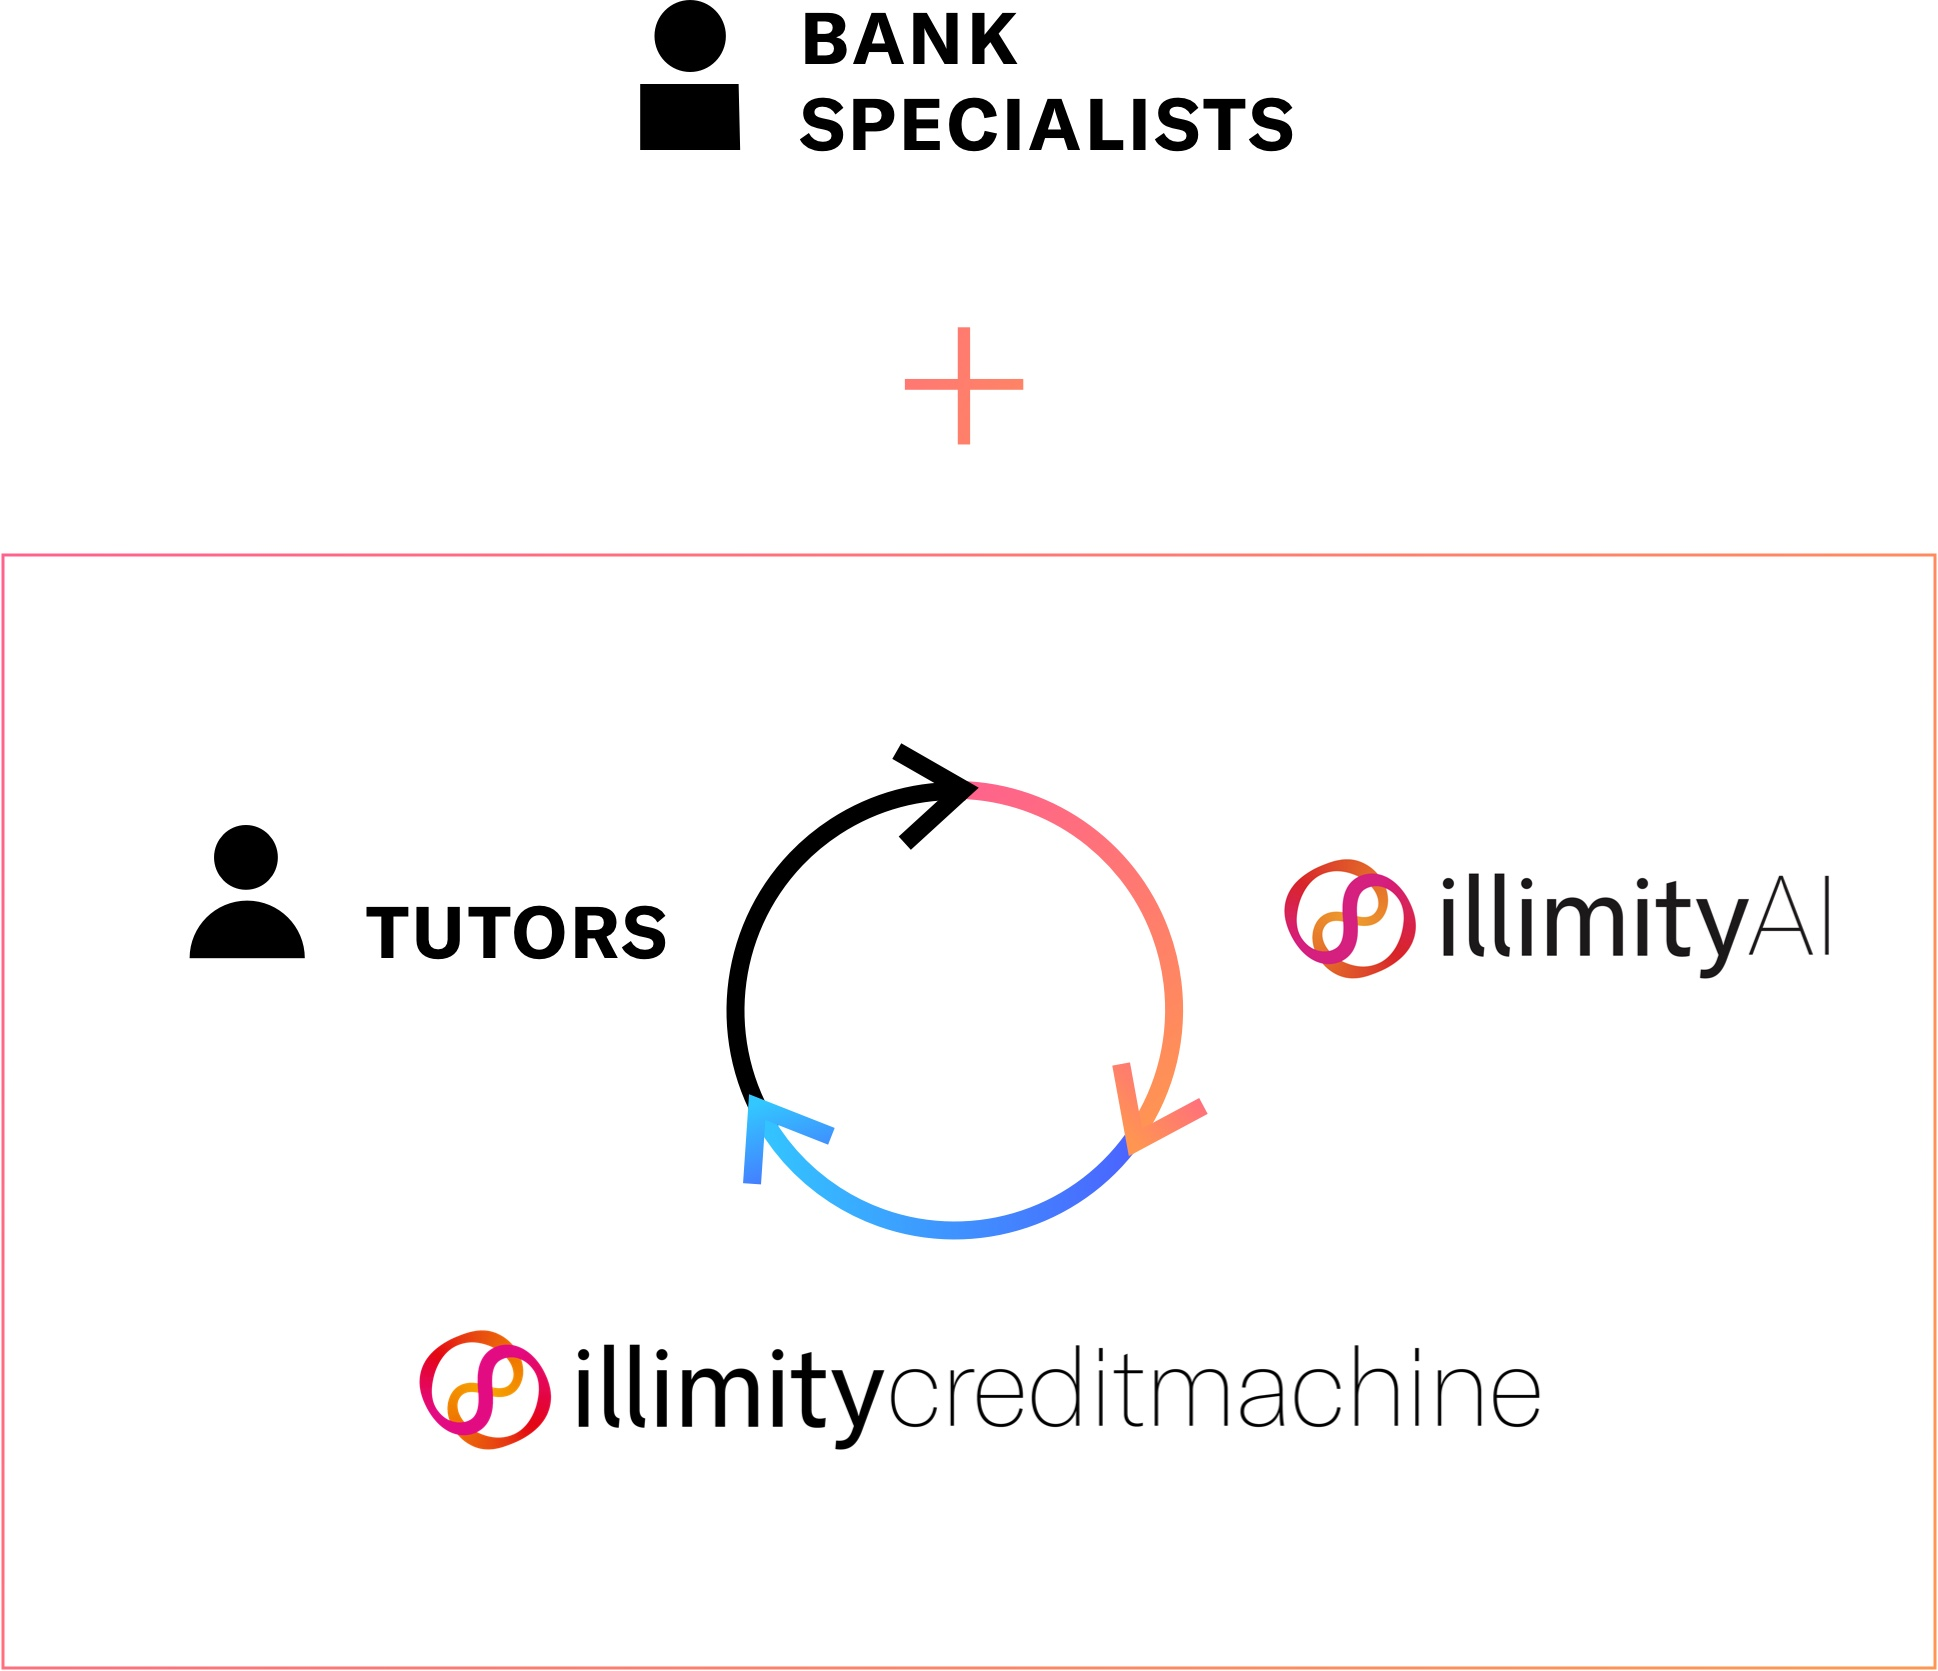 Illimity bank specialists